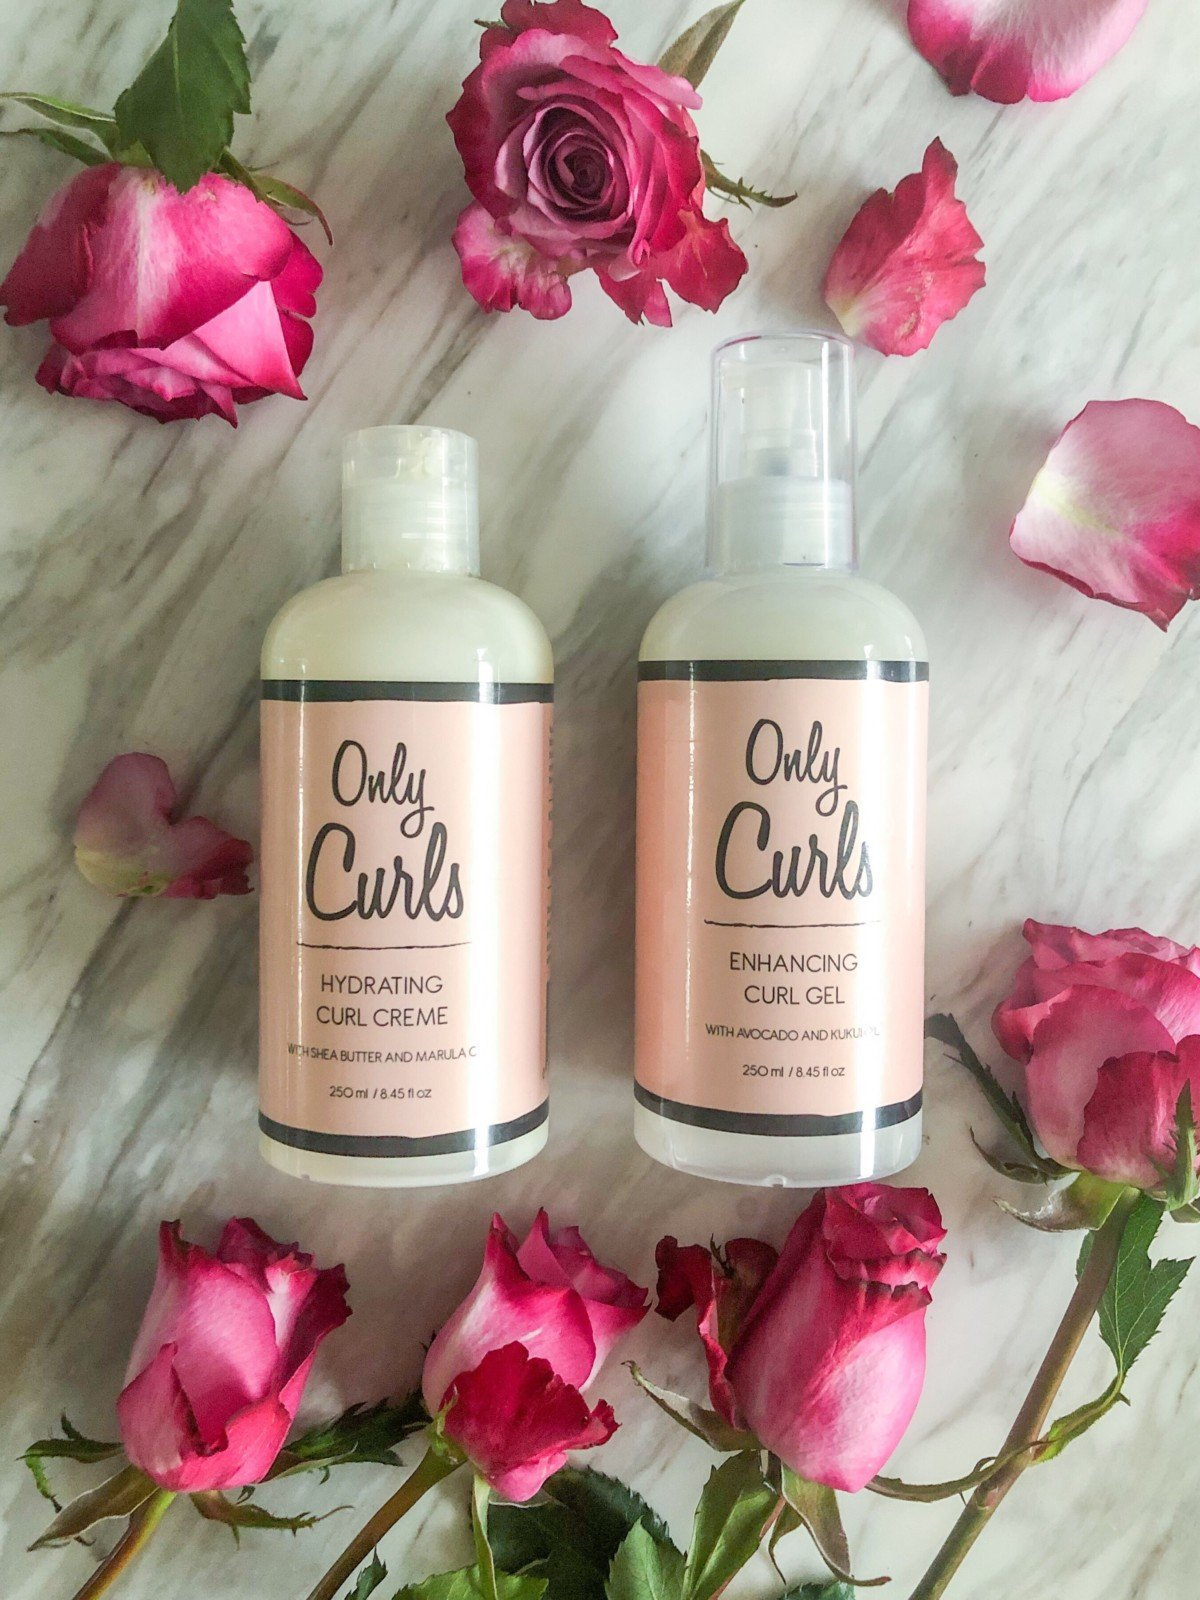 Specifically for girls with curls and perfect for the curly girl method Only Curls are a vegan natural brand. Only Curls Hydrating curl creme and Curly girl UK approved Enhancing Curl gel.